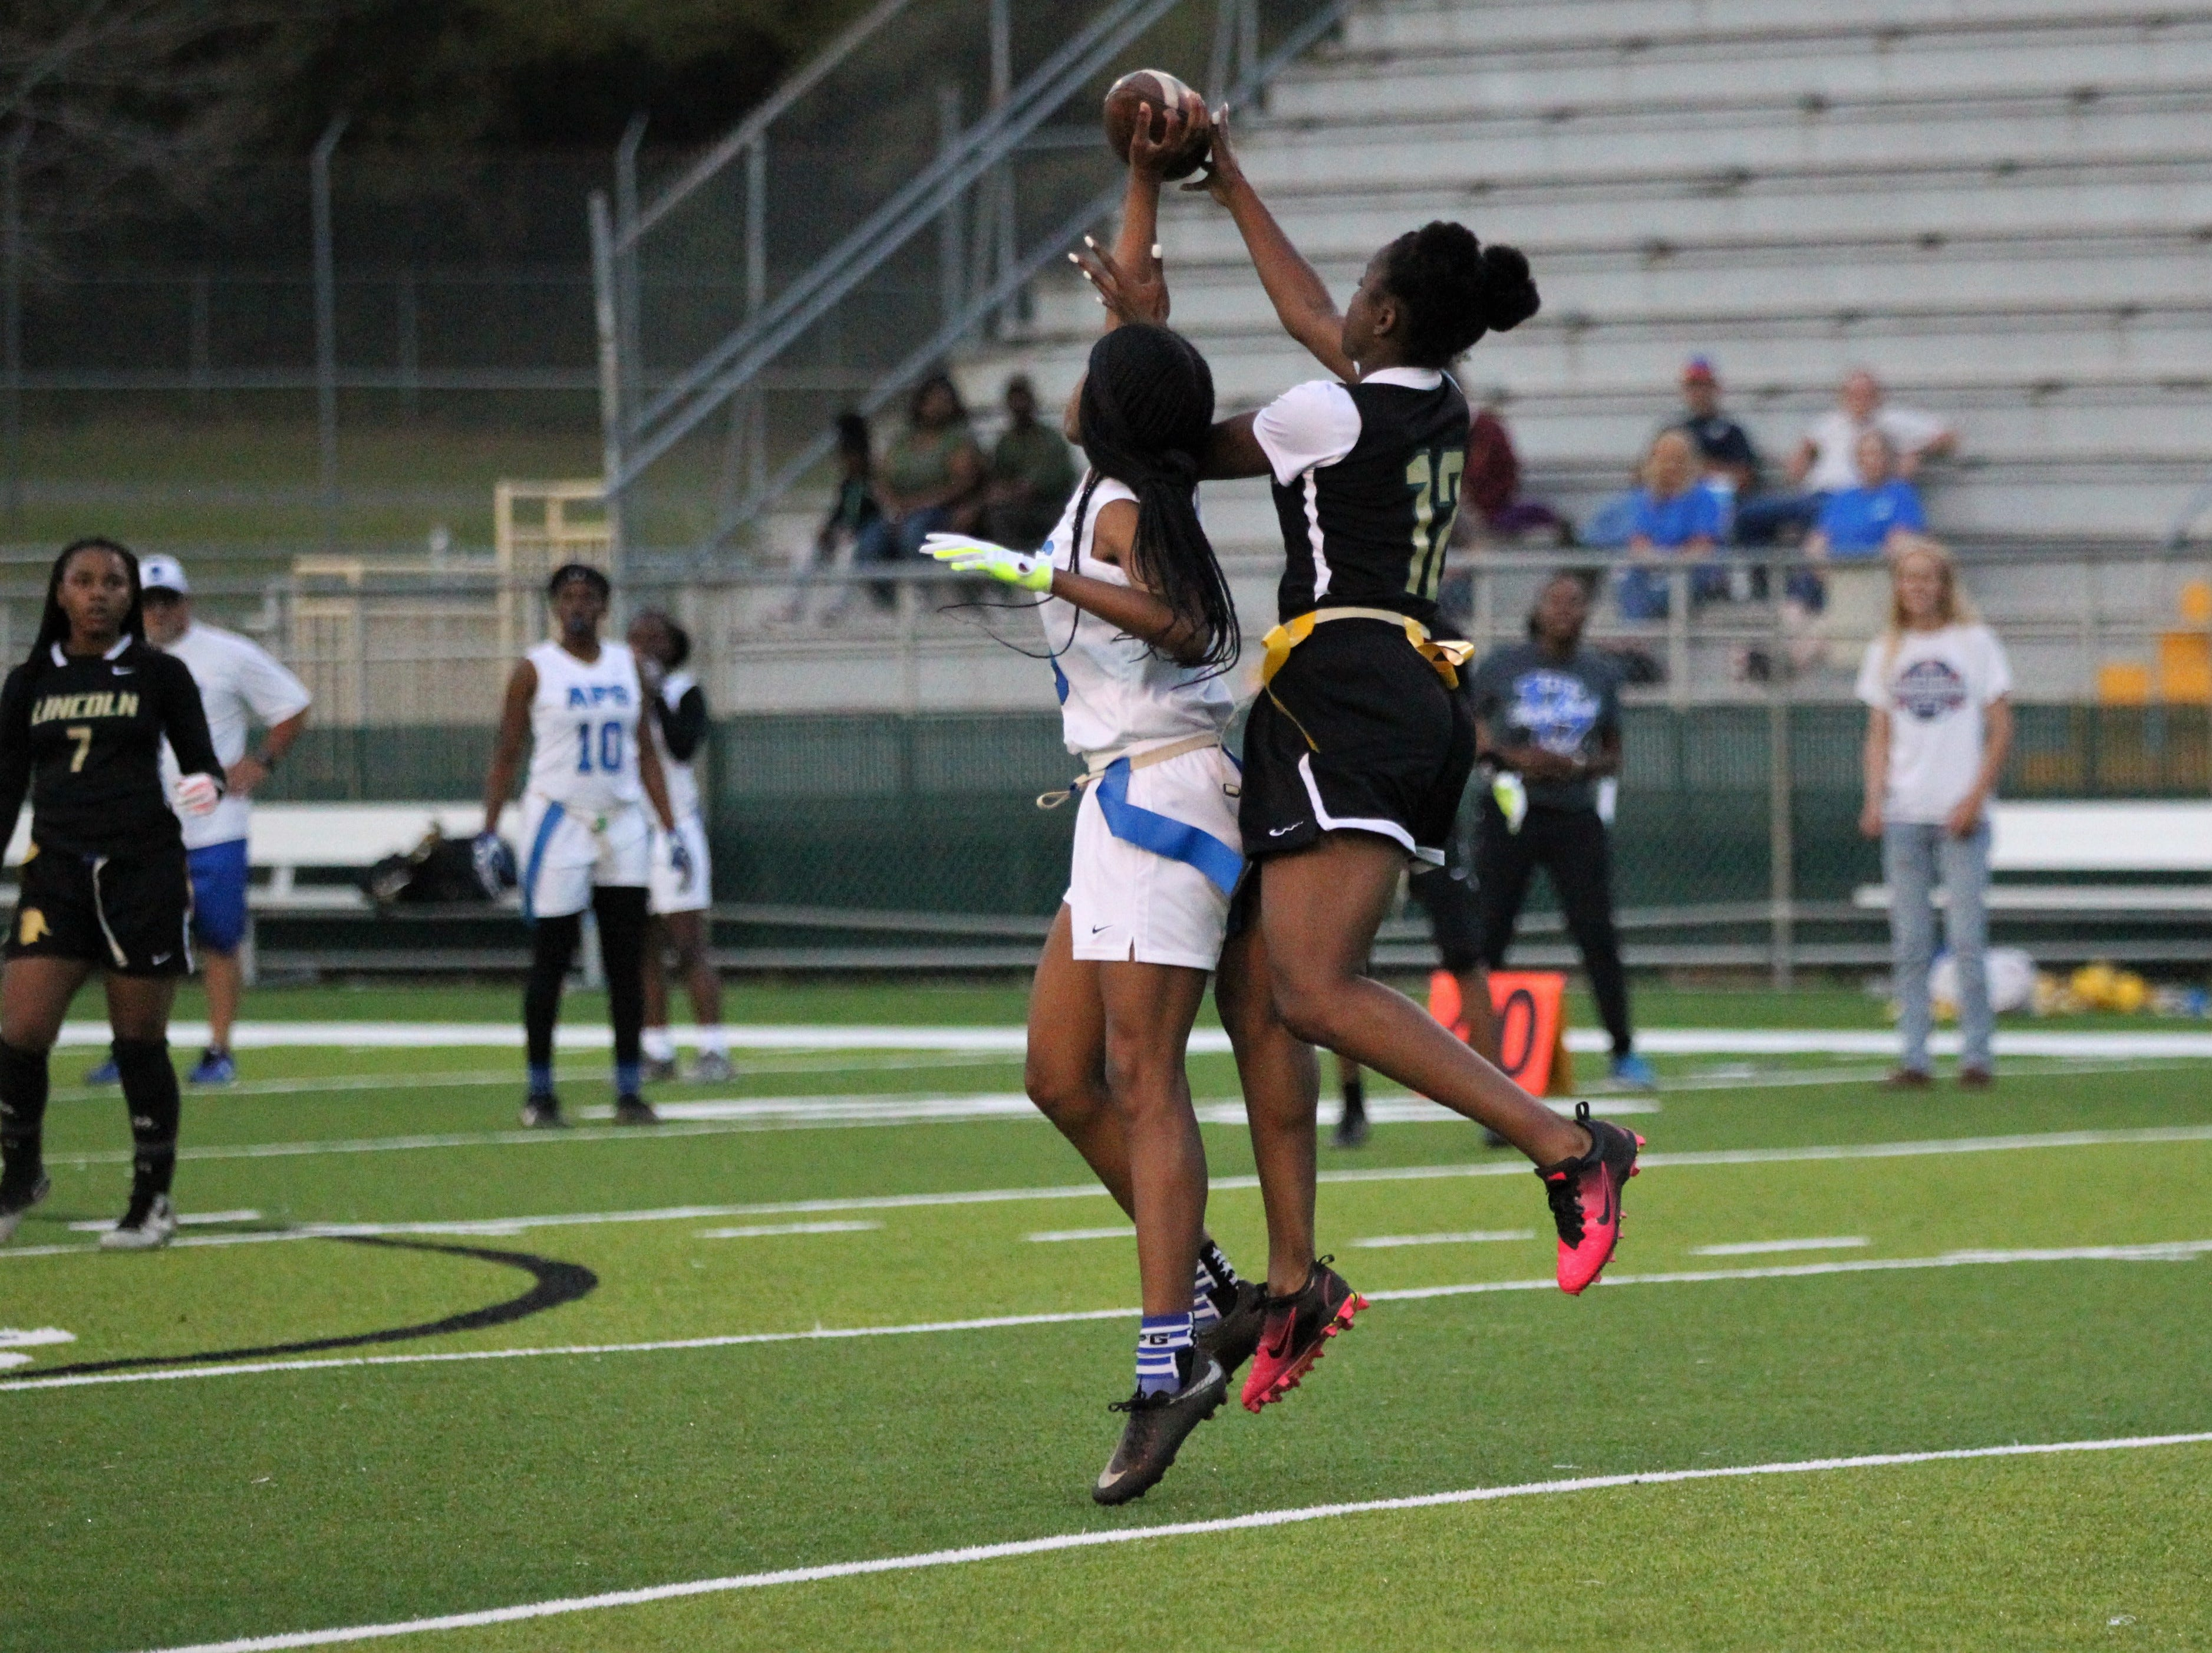 Godby receiver Gisele Jones managed to break up an interception and catch the ball for a long yardage as Godby's flag football team beat Lincoln 25-6 at Gene Cox Stadium on March 14, 2019.